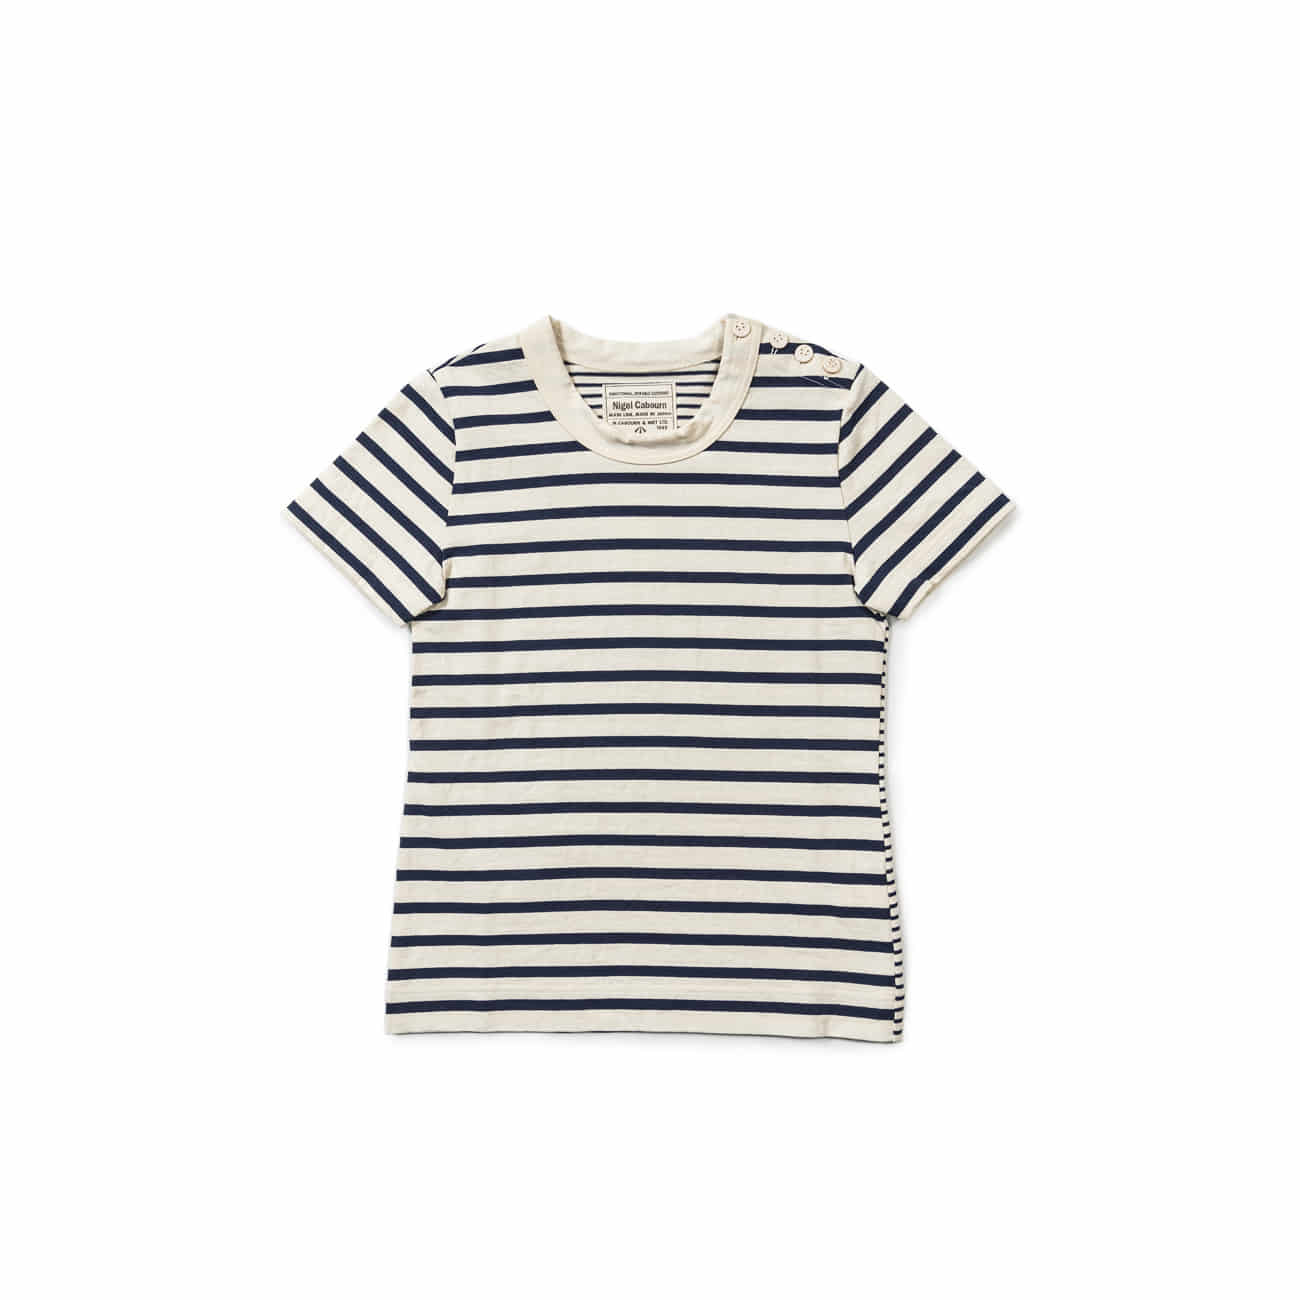 Sailor T-Shirt S/S